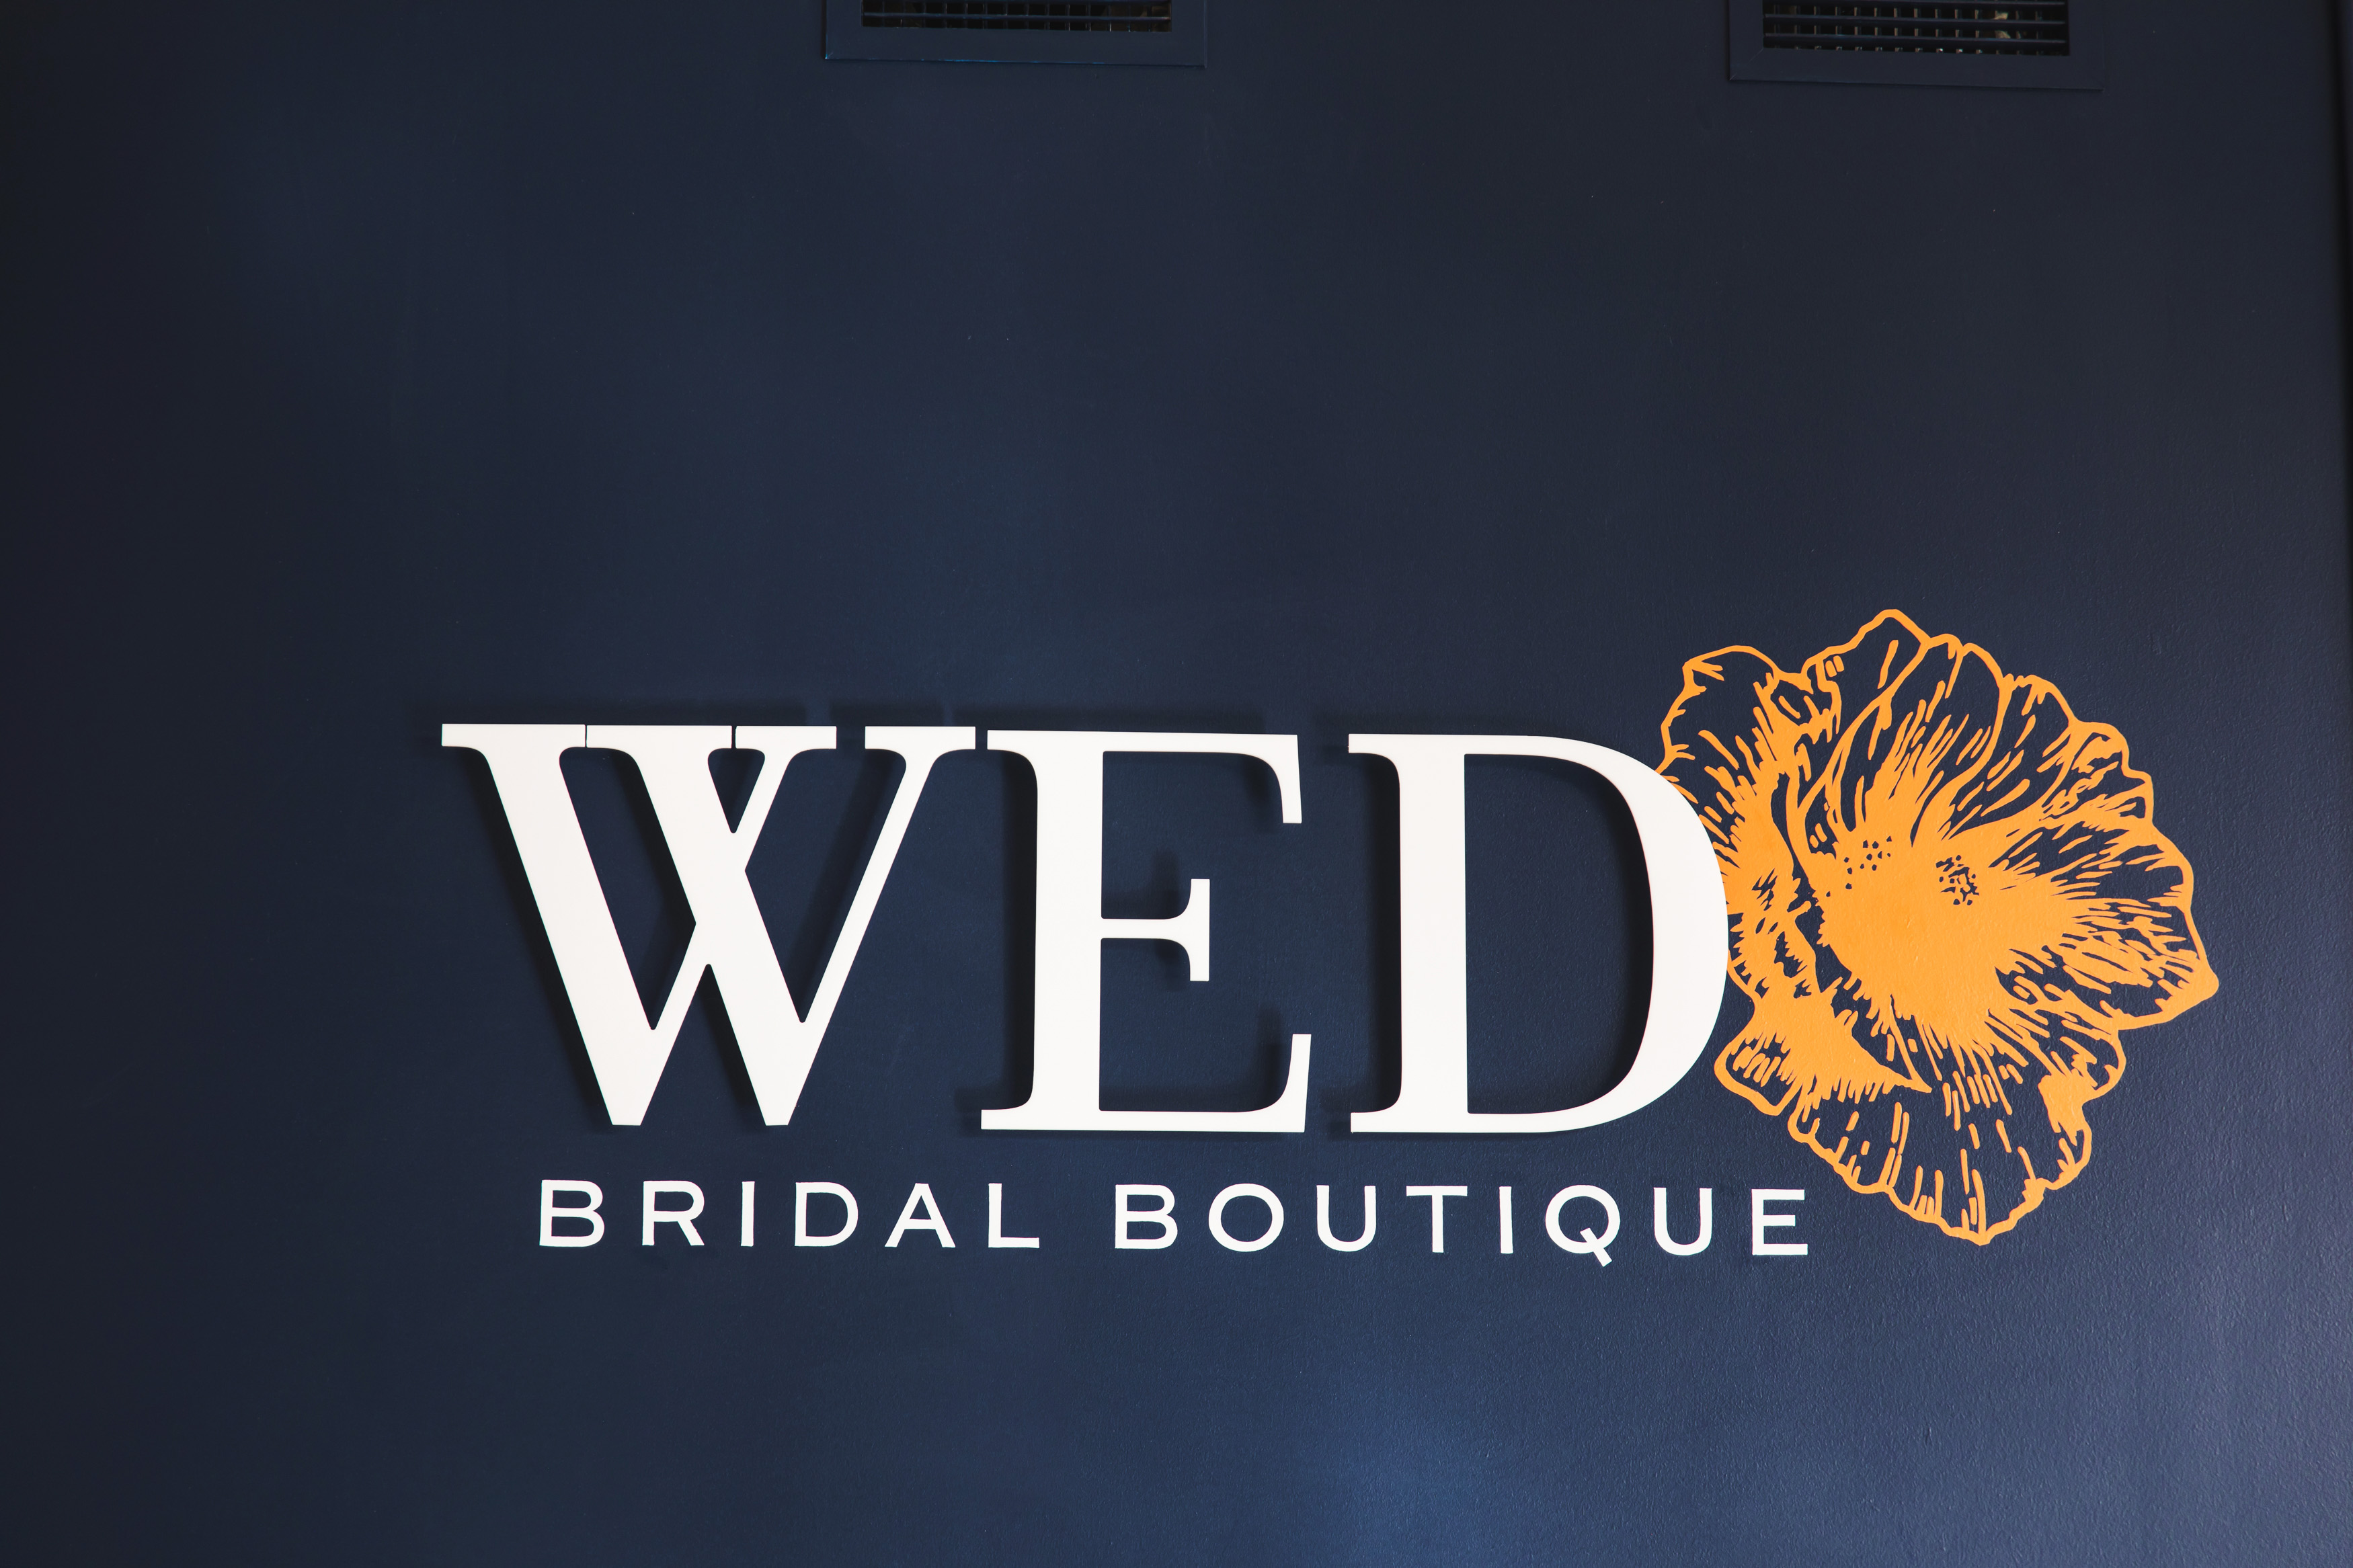 Wed Bridal Boutique Monika Normand Photography